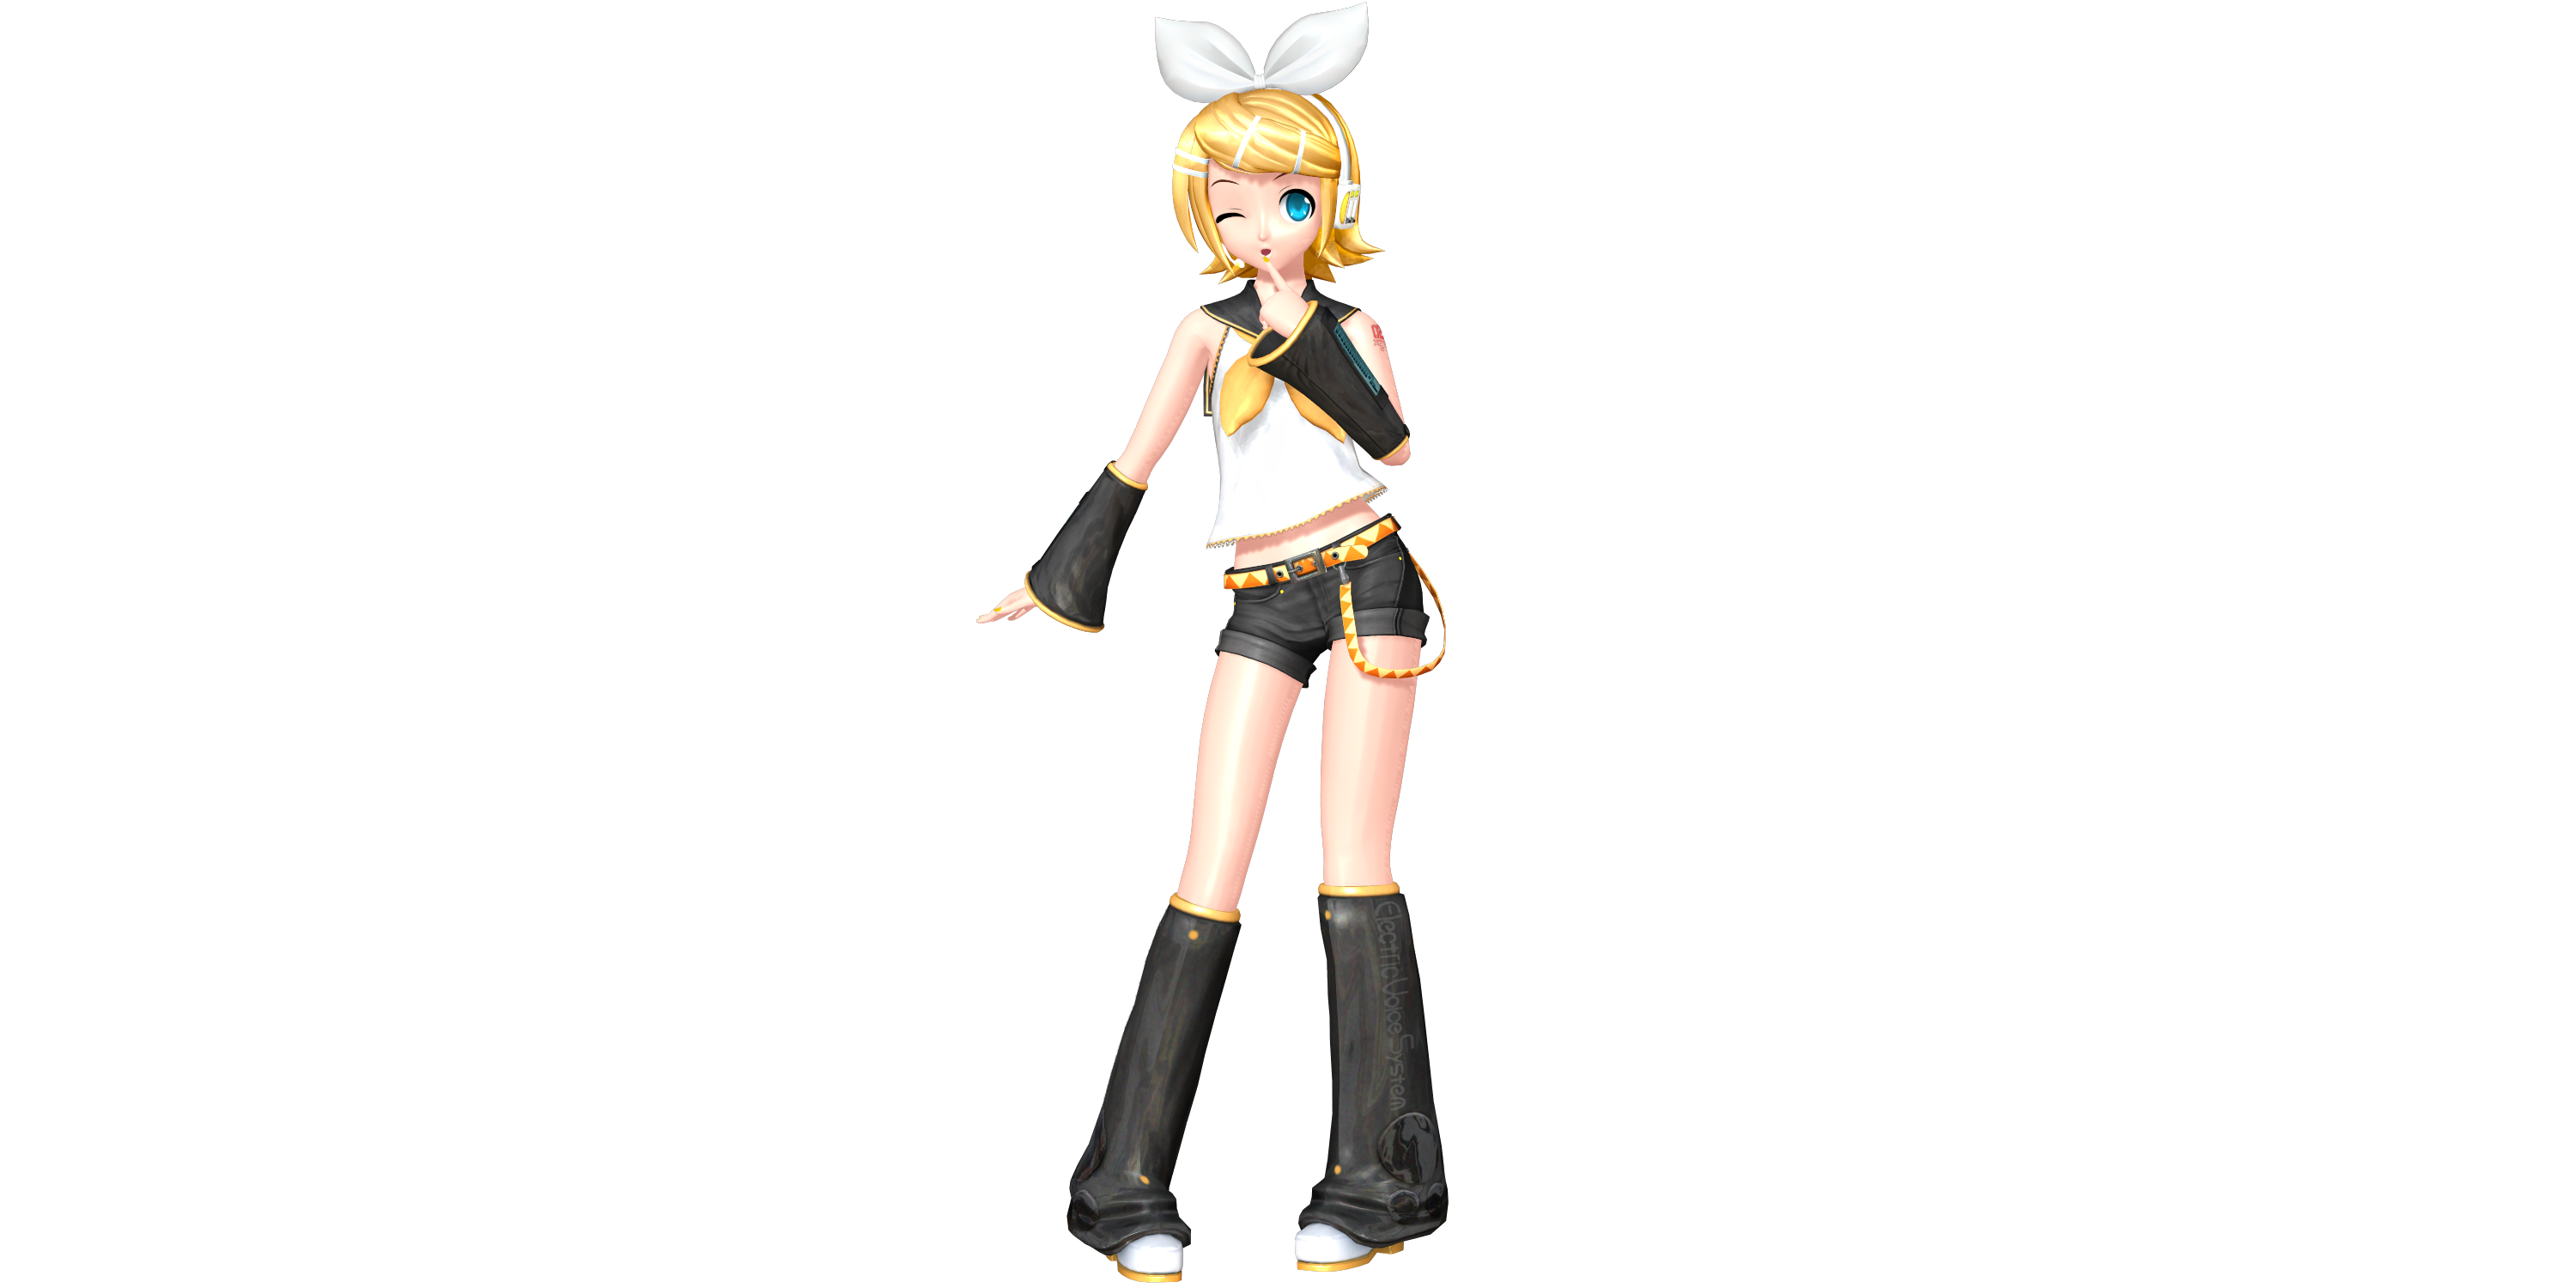 Project diva future tone default rin by wefede on deviantart - Kagamine rin project diva ...